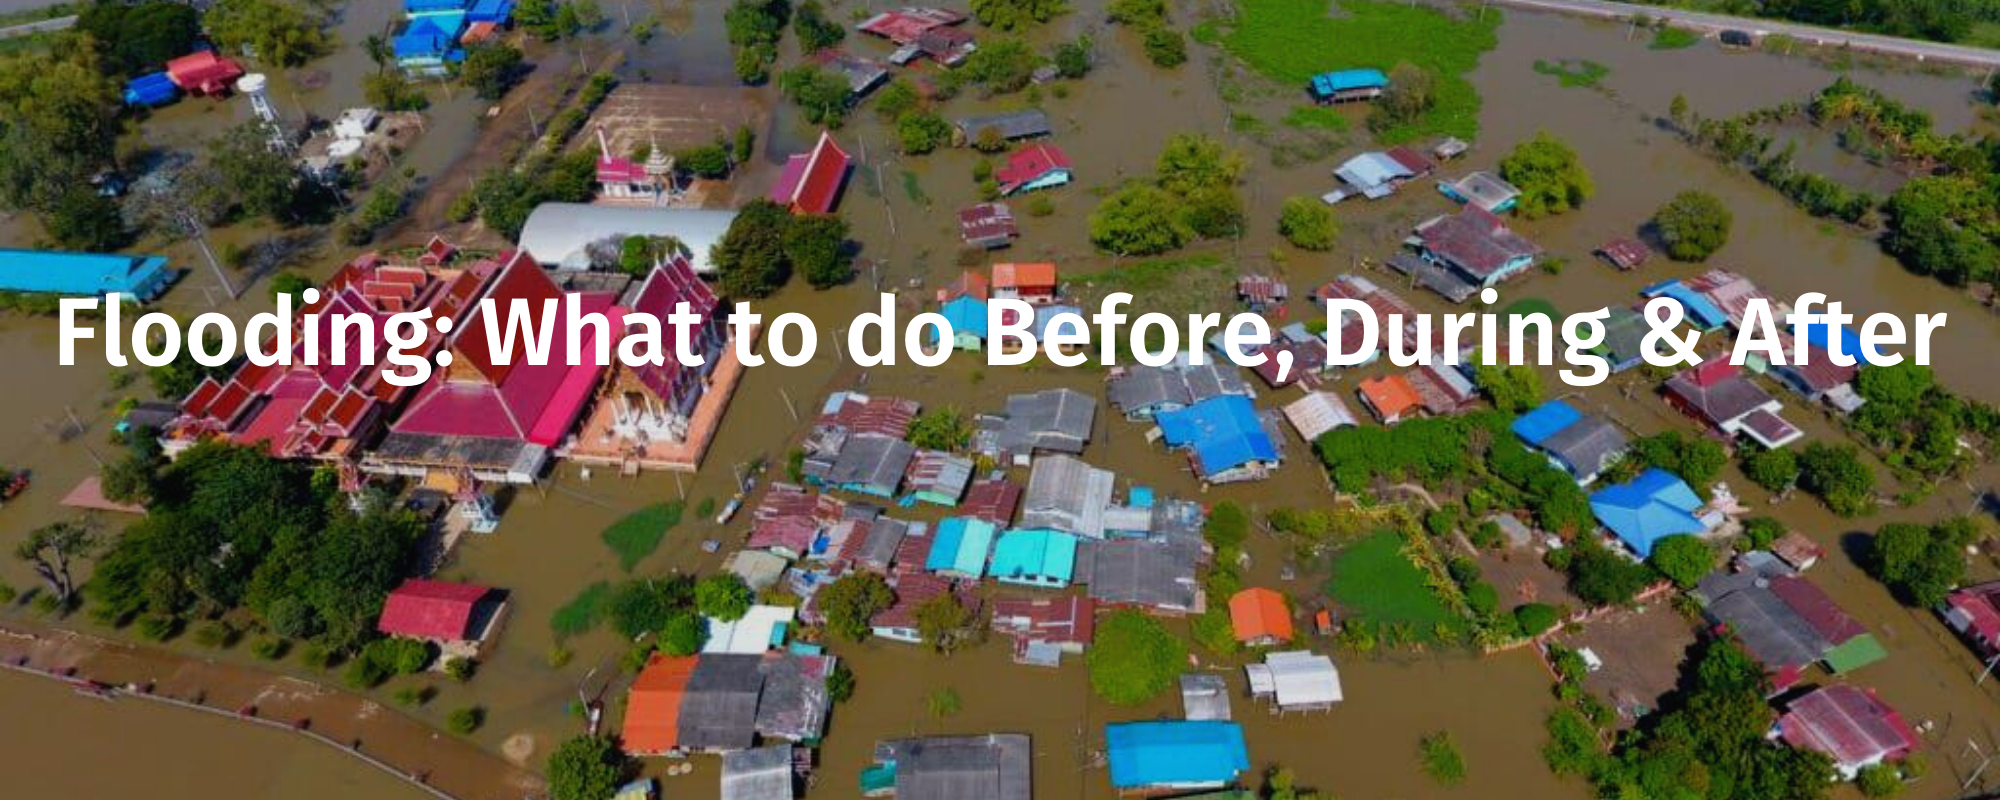 Flooding: What to do Before, During & After